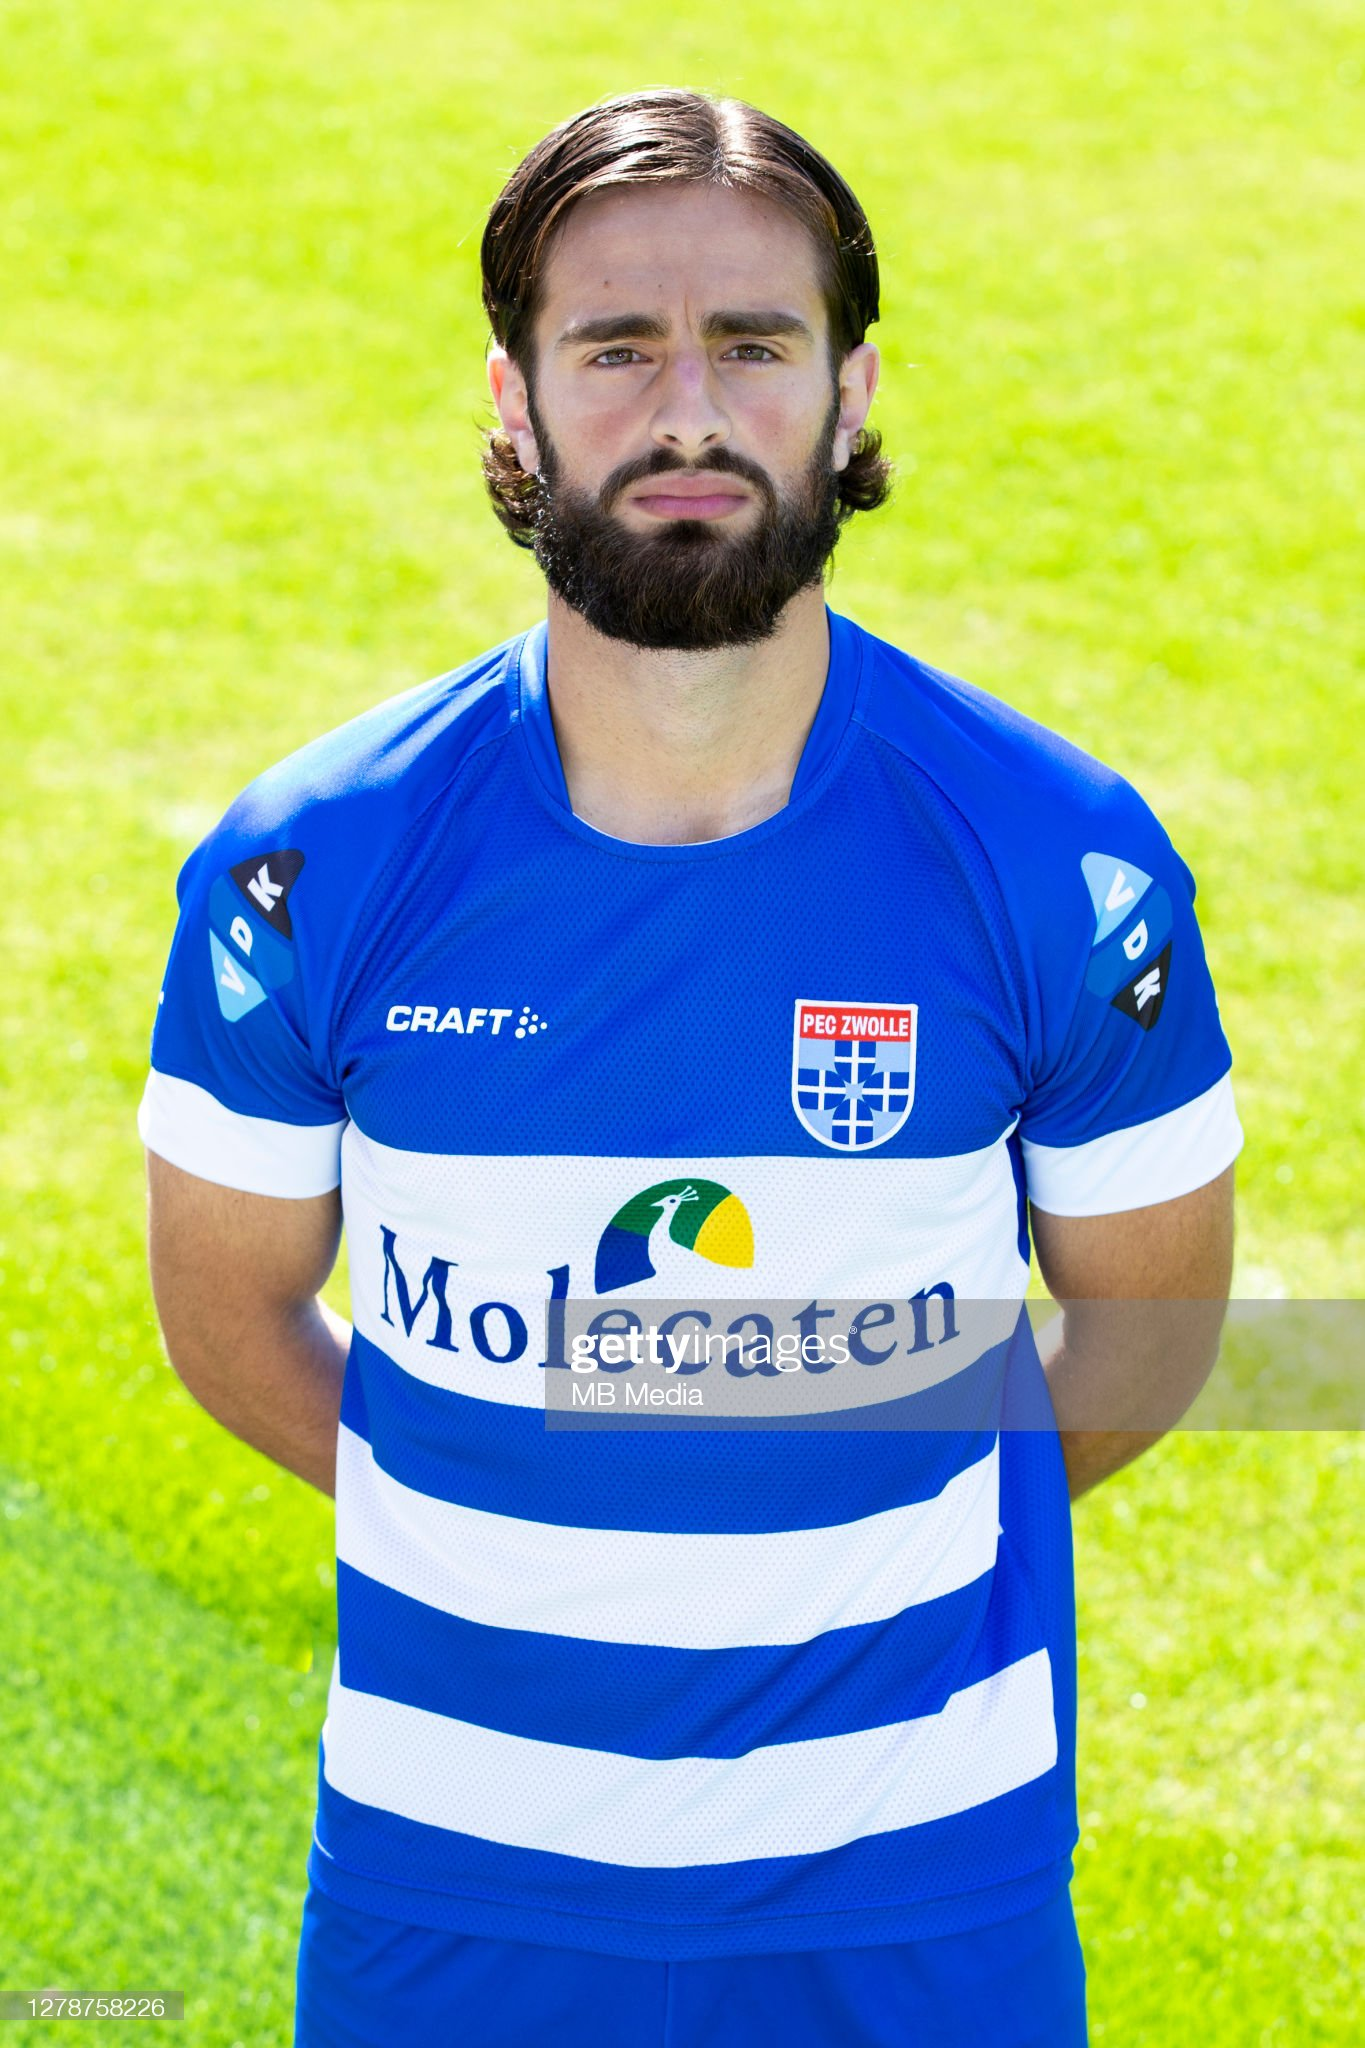 https://media.gettyimages.com/photos/destan-bajselmani-of-pec-zwolle-during-the-2020-2021-season-photo-of-picture-id1278758226?s=2048x2048